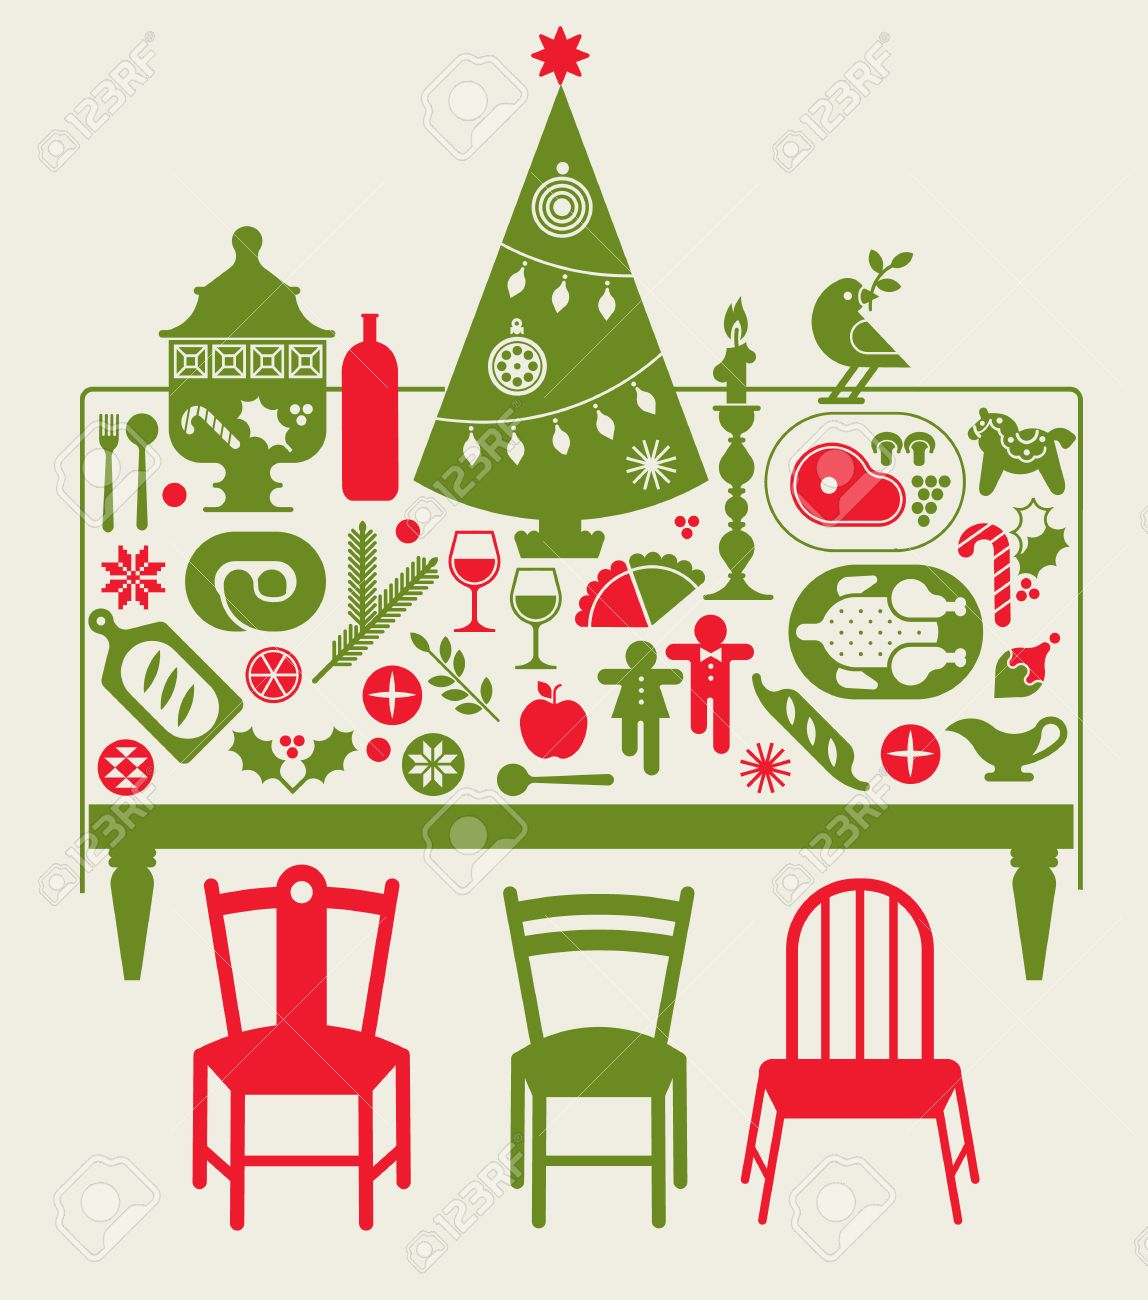 Christmas Dinner Clipart.Composition With Christmas Dinner Table Festive Food And Christmas